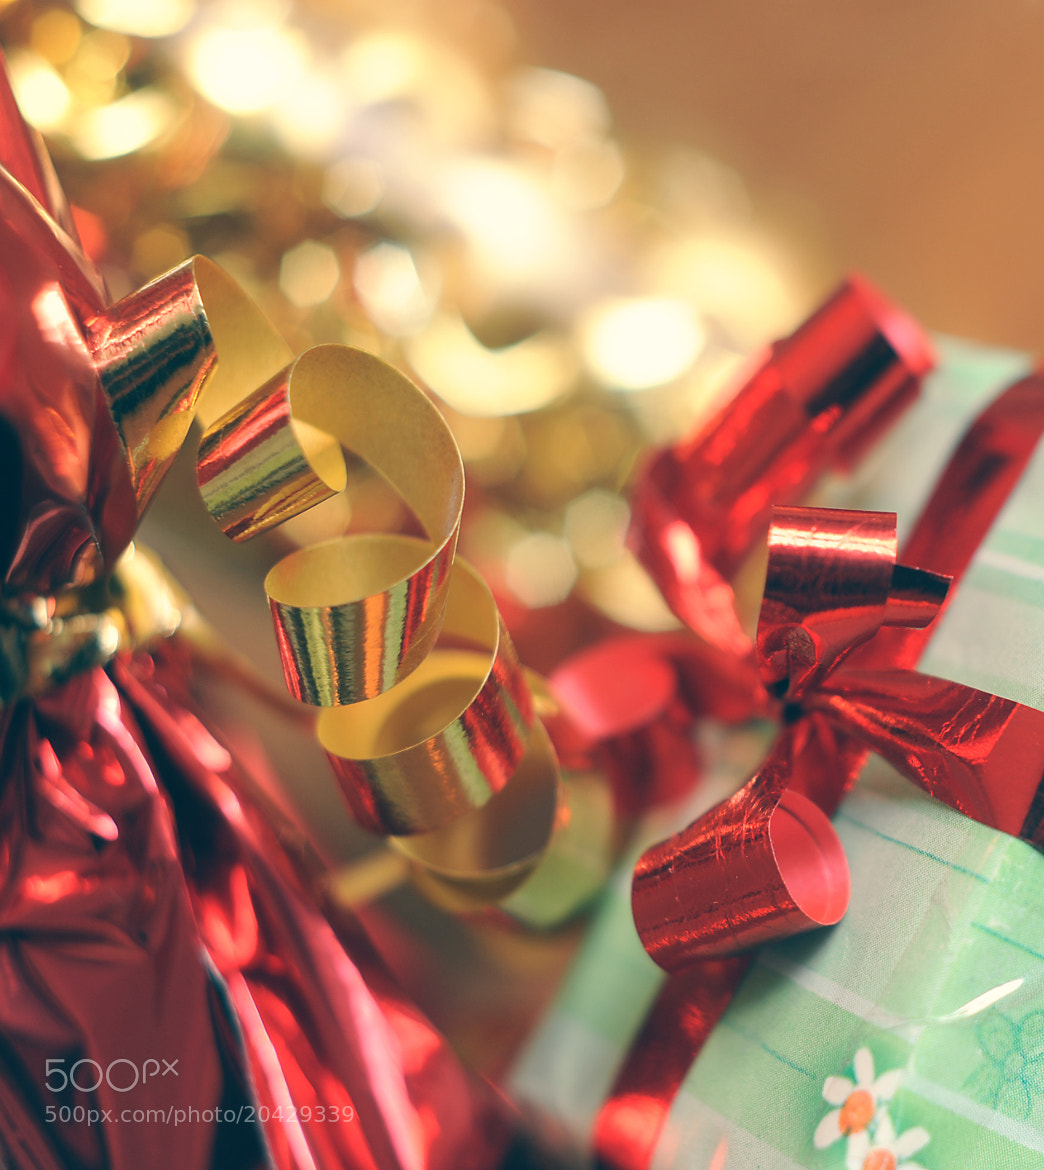 Photograph Christmas time by Federica Provini Fotografie on 500px